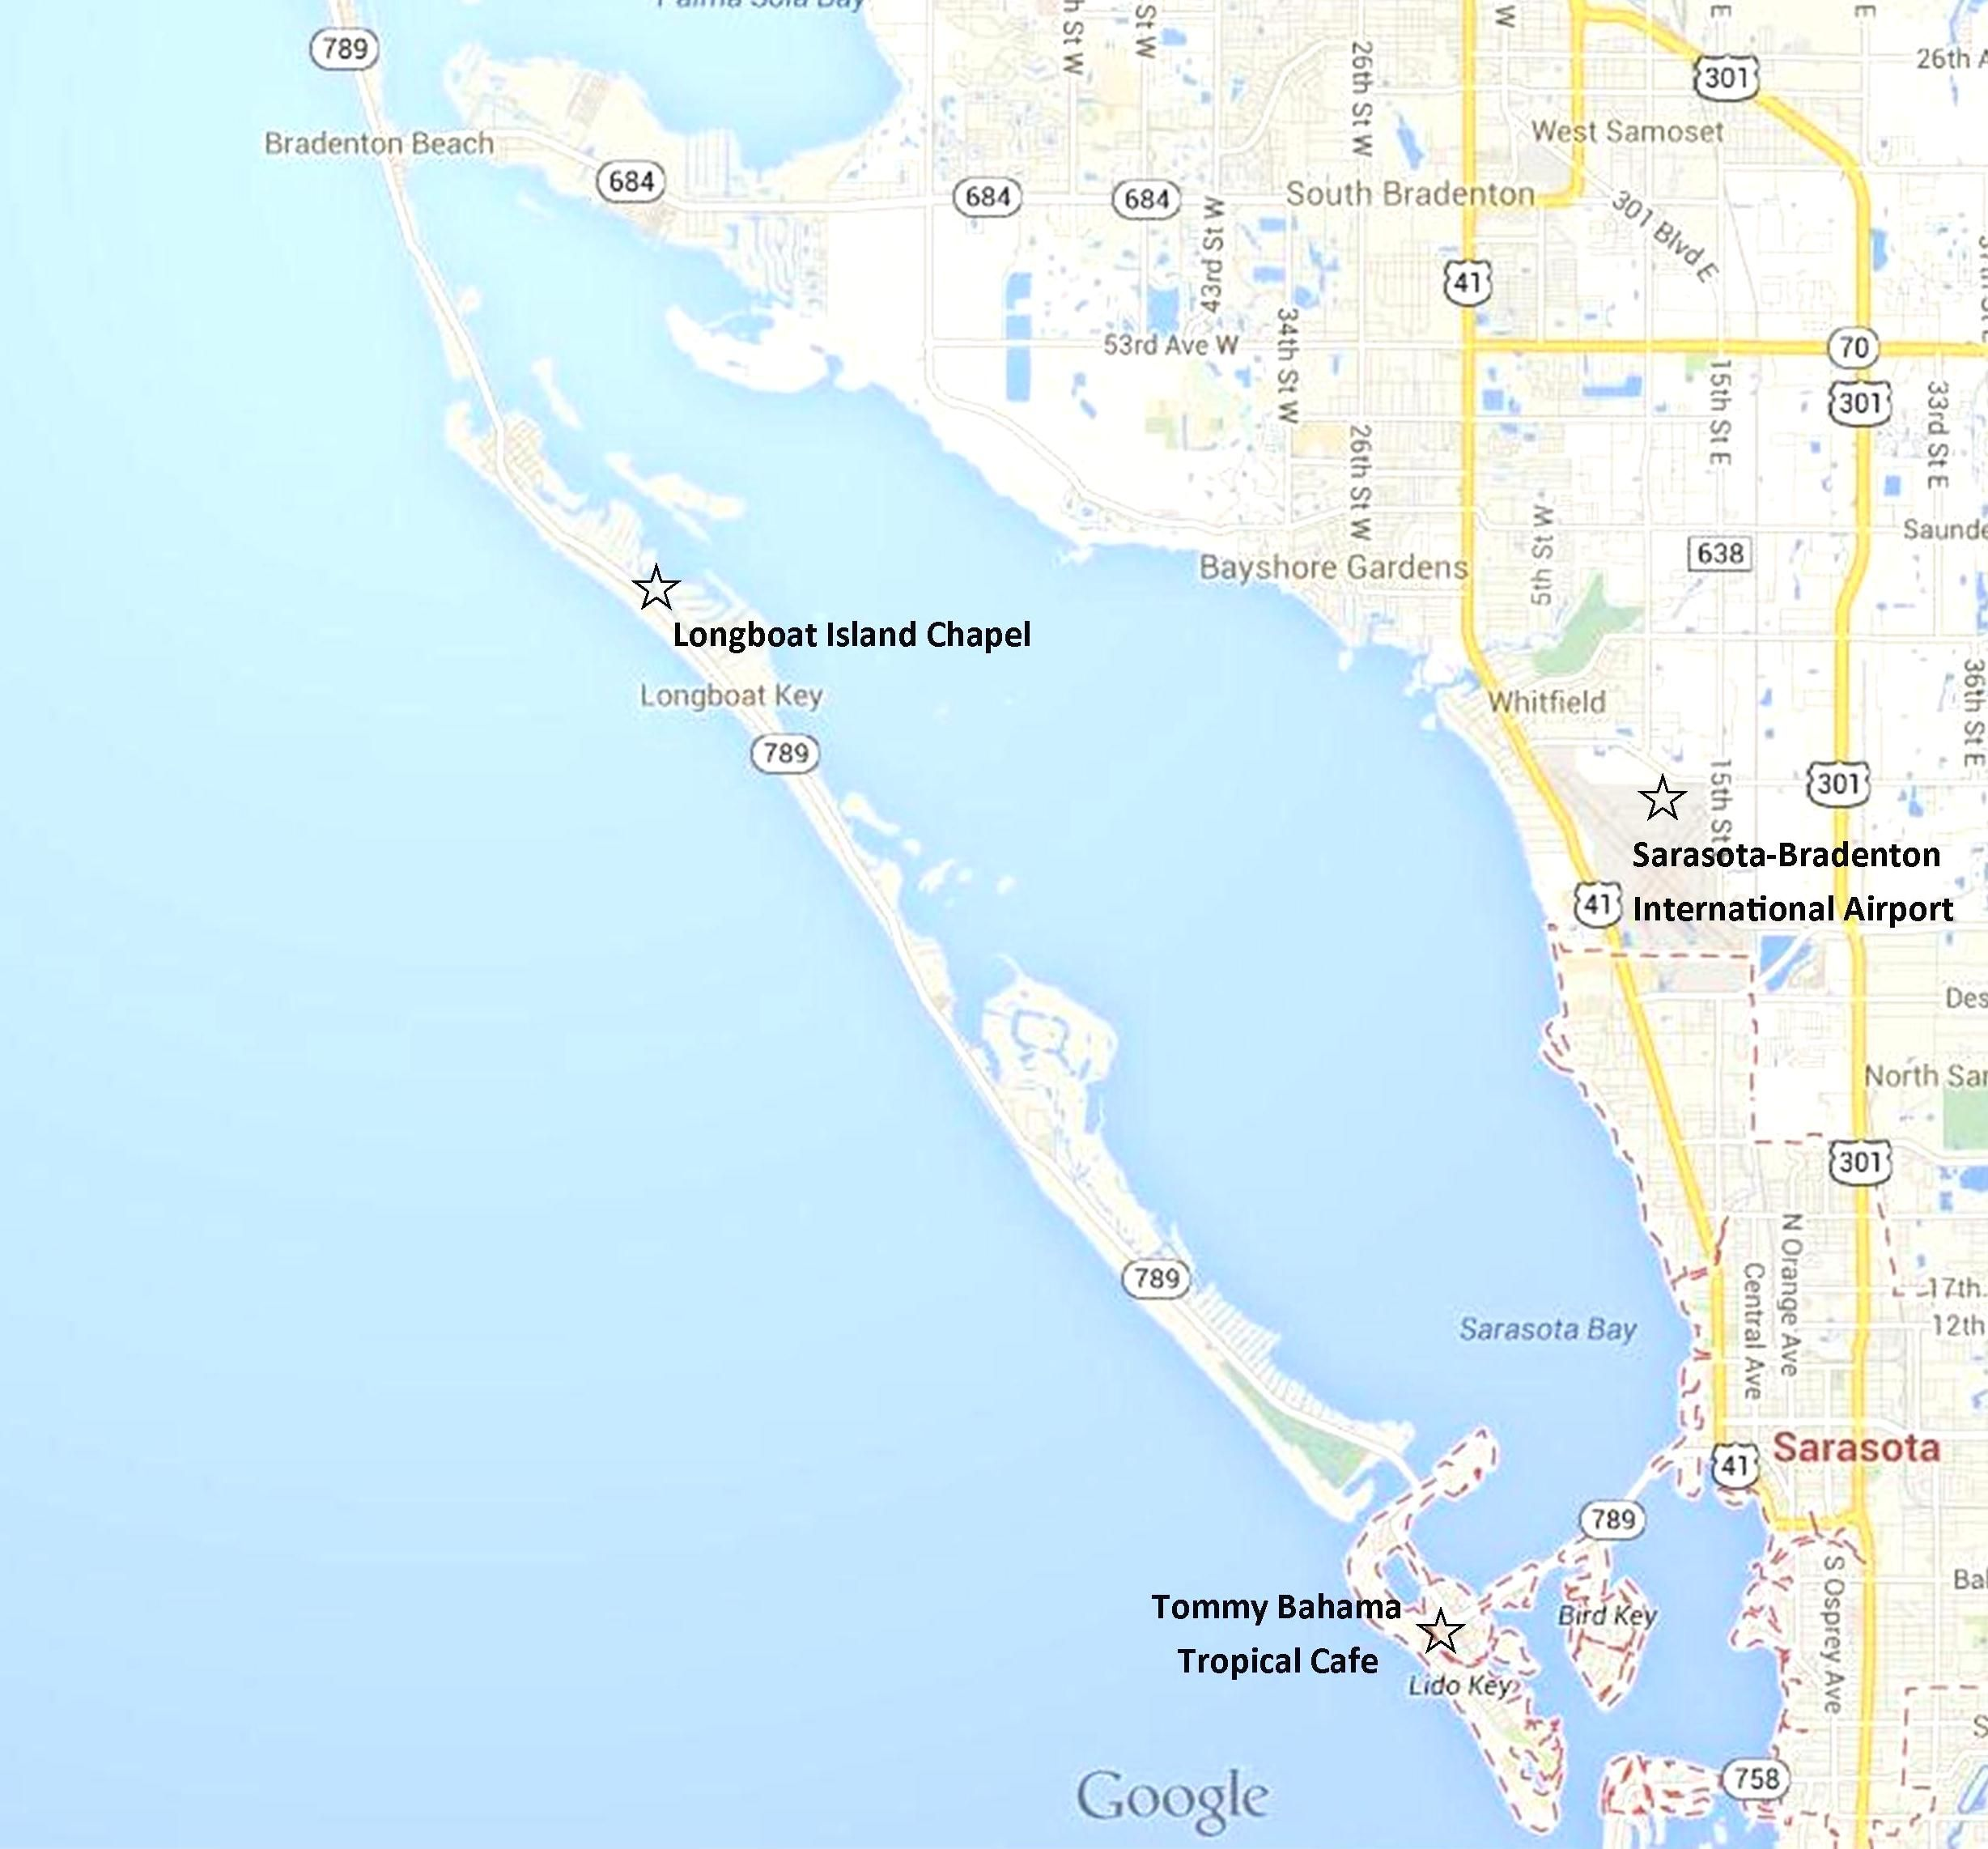 Google Map Sarasota Lido Key Longboat And Anna Maria Island Bradenton Beach